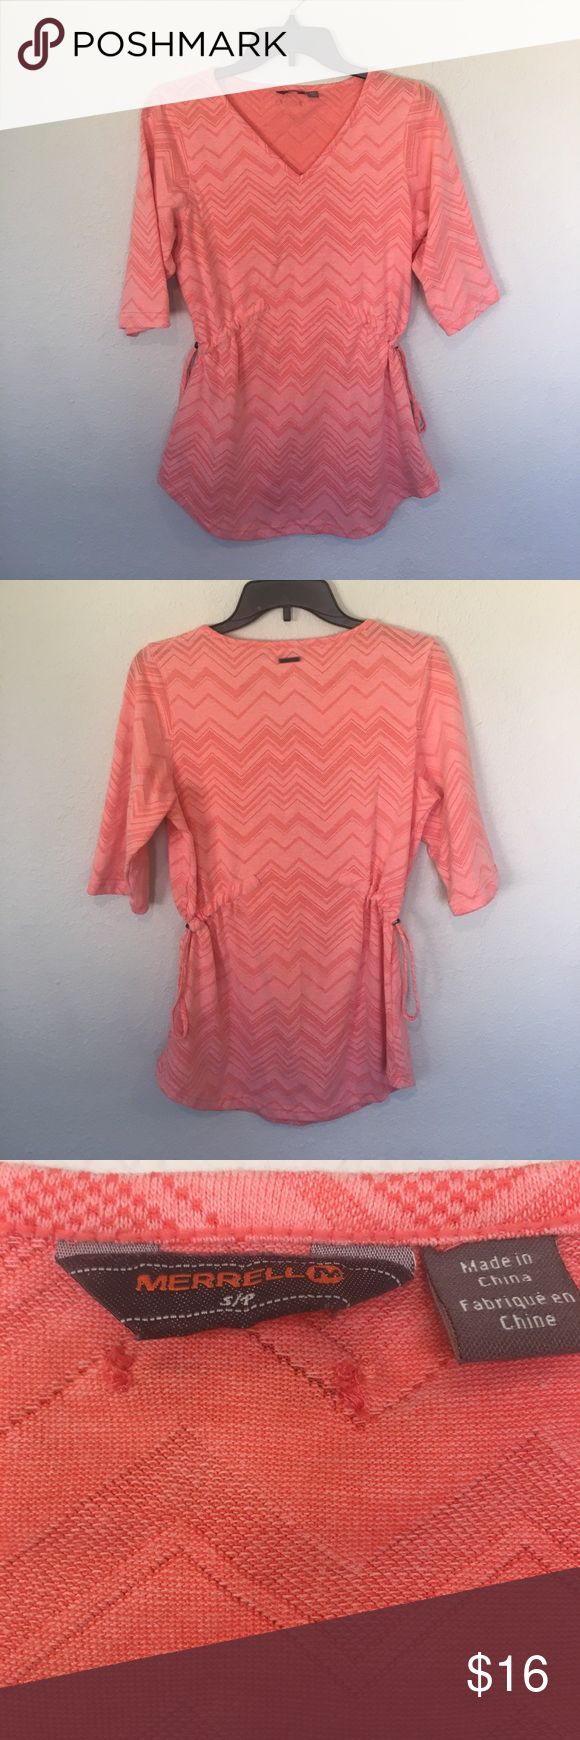 """Merrell Chevron Shirt Merrell half sleeve top with chevron pattern. Pull drawstring adjustable sides for the perfect fit. Underarm to underarm 18"""" Length 27.75"""" No trades, offers welcome. Merrell Tops"""